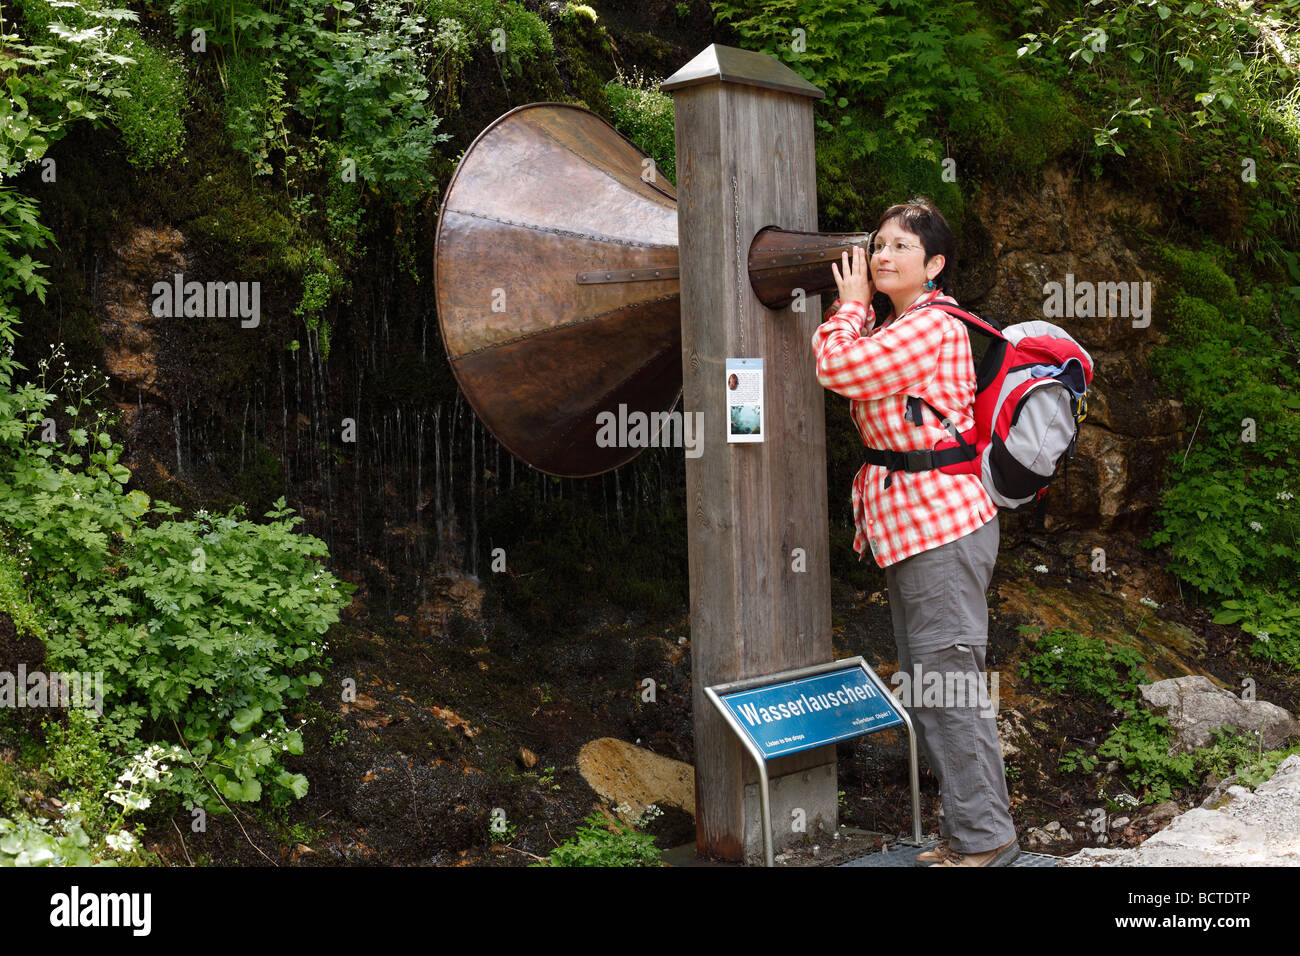 Woman with backpack listening to a copper funnel, station 'listening to water' on the water themed hiking - Stock Image